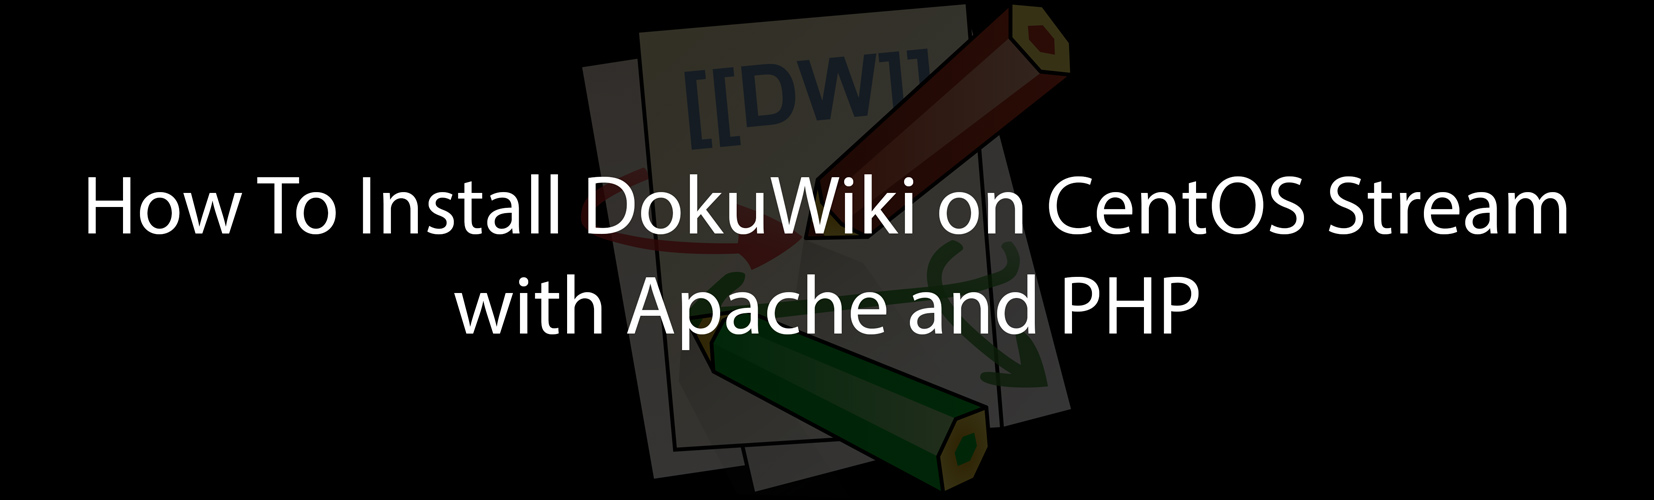 How To Install DokuWiki on CentOS Stream 8 with Apache and PHP 8